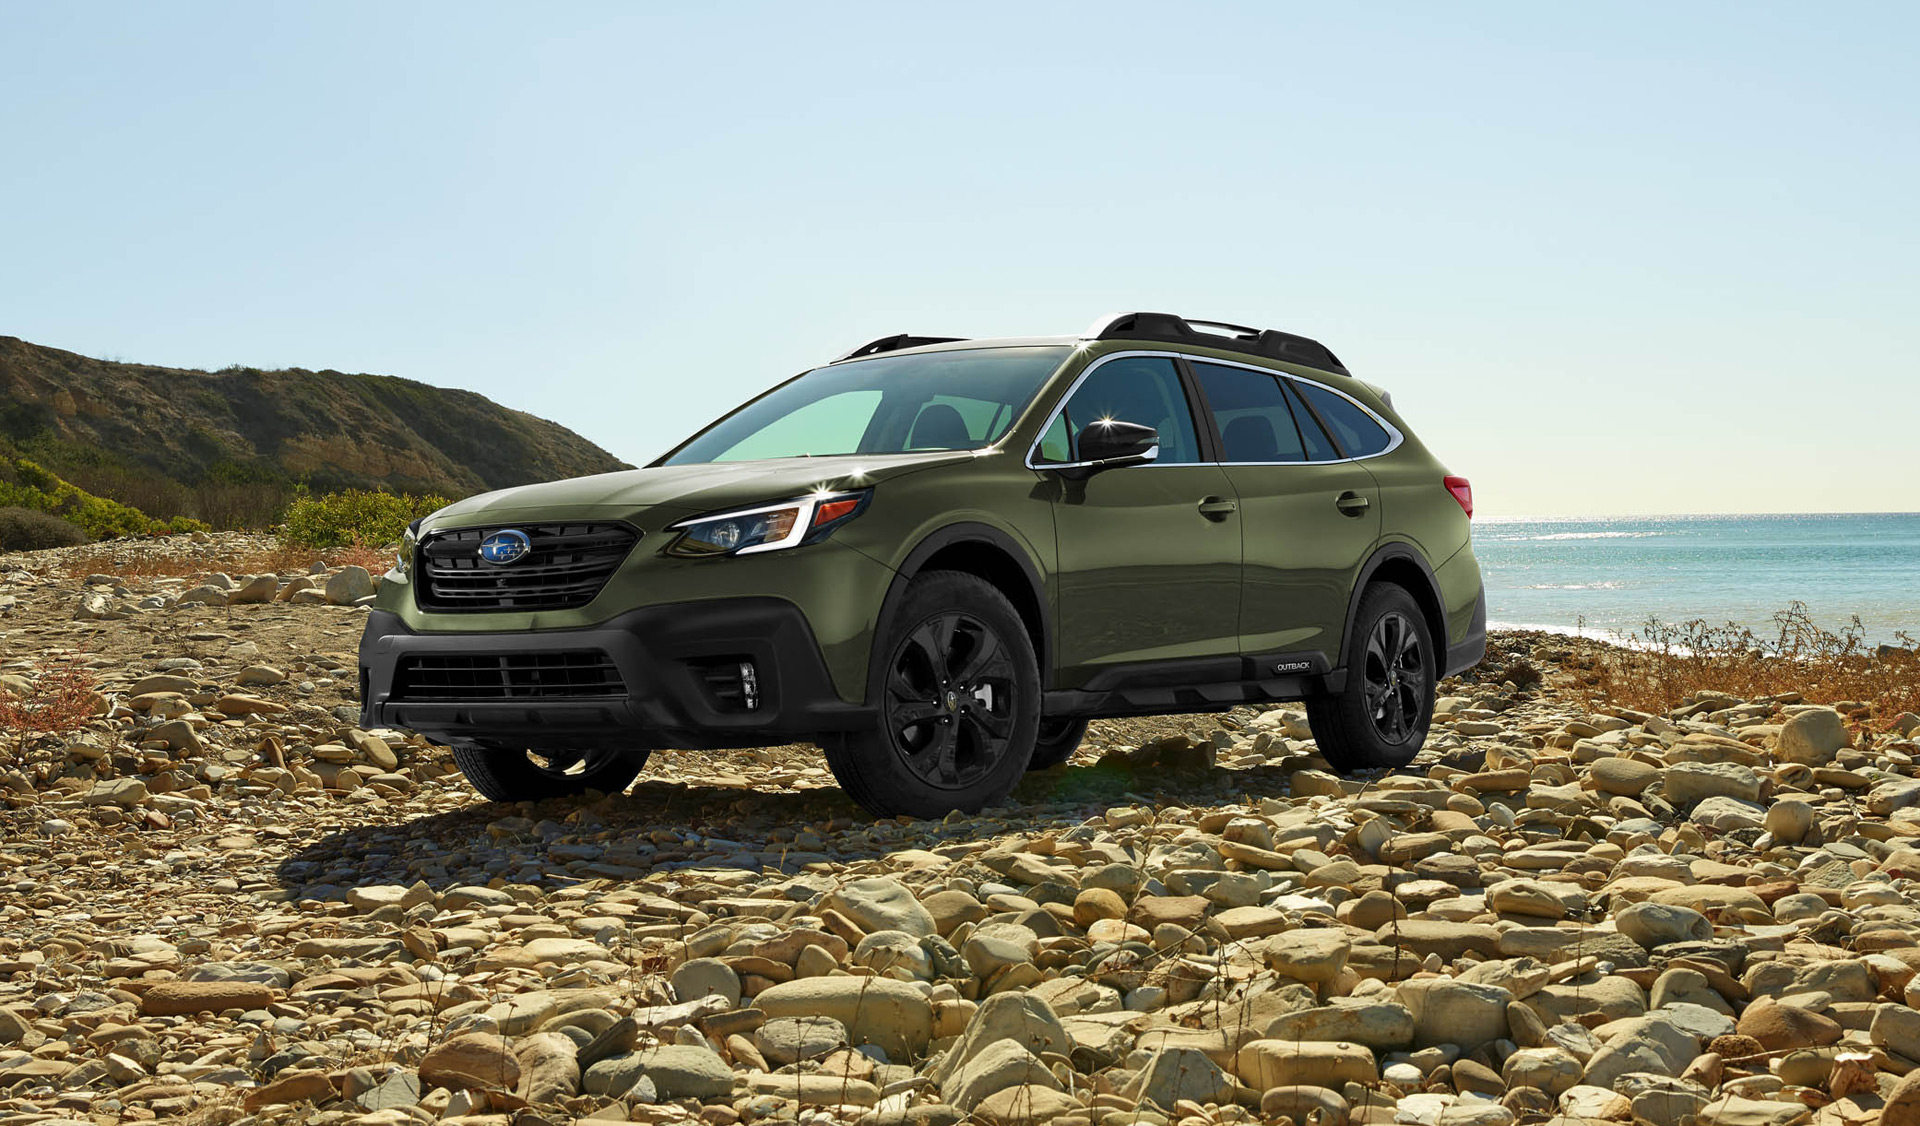 2020 Subaru Outback Review, Ratings, Specs, Prices, and Photos